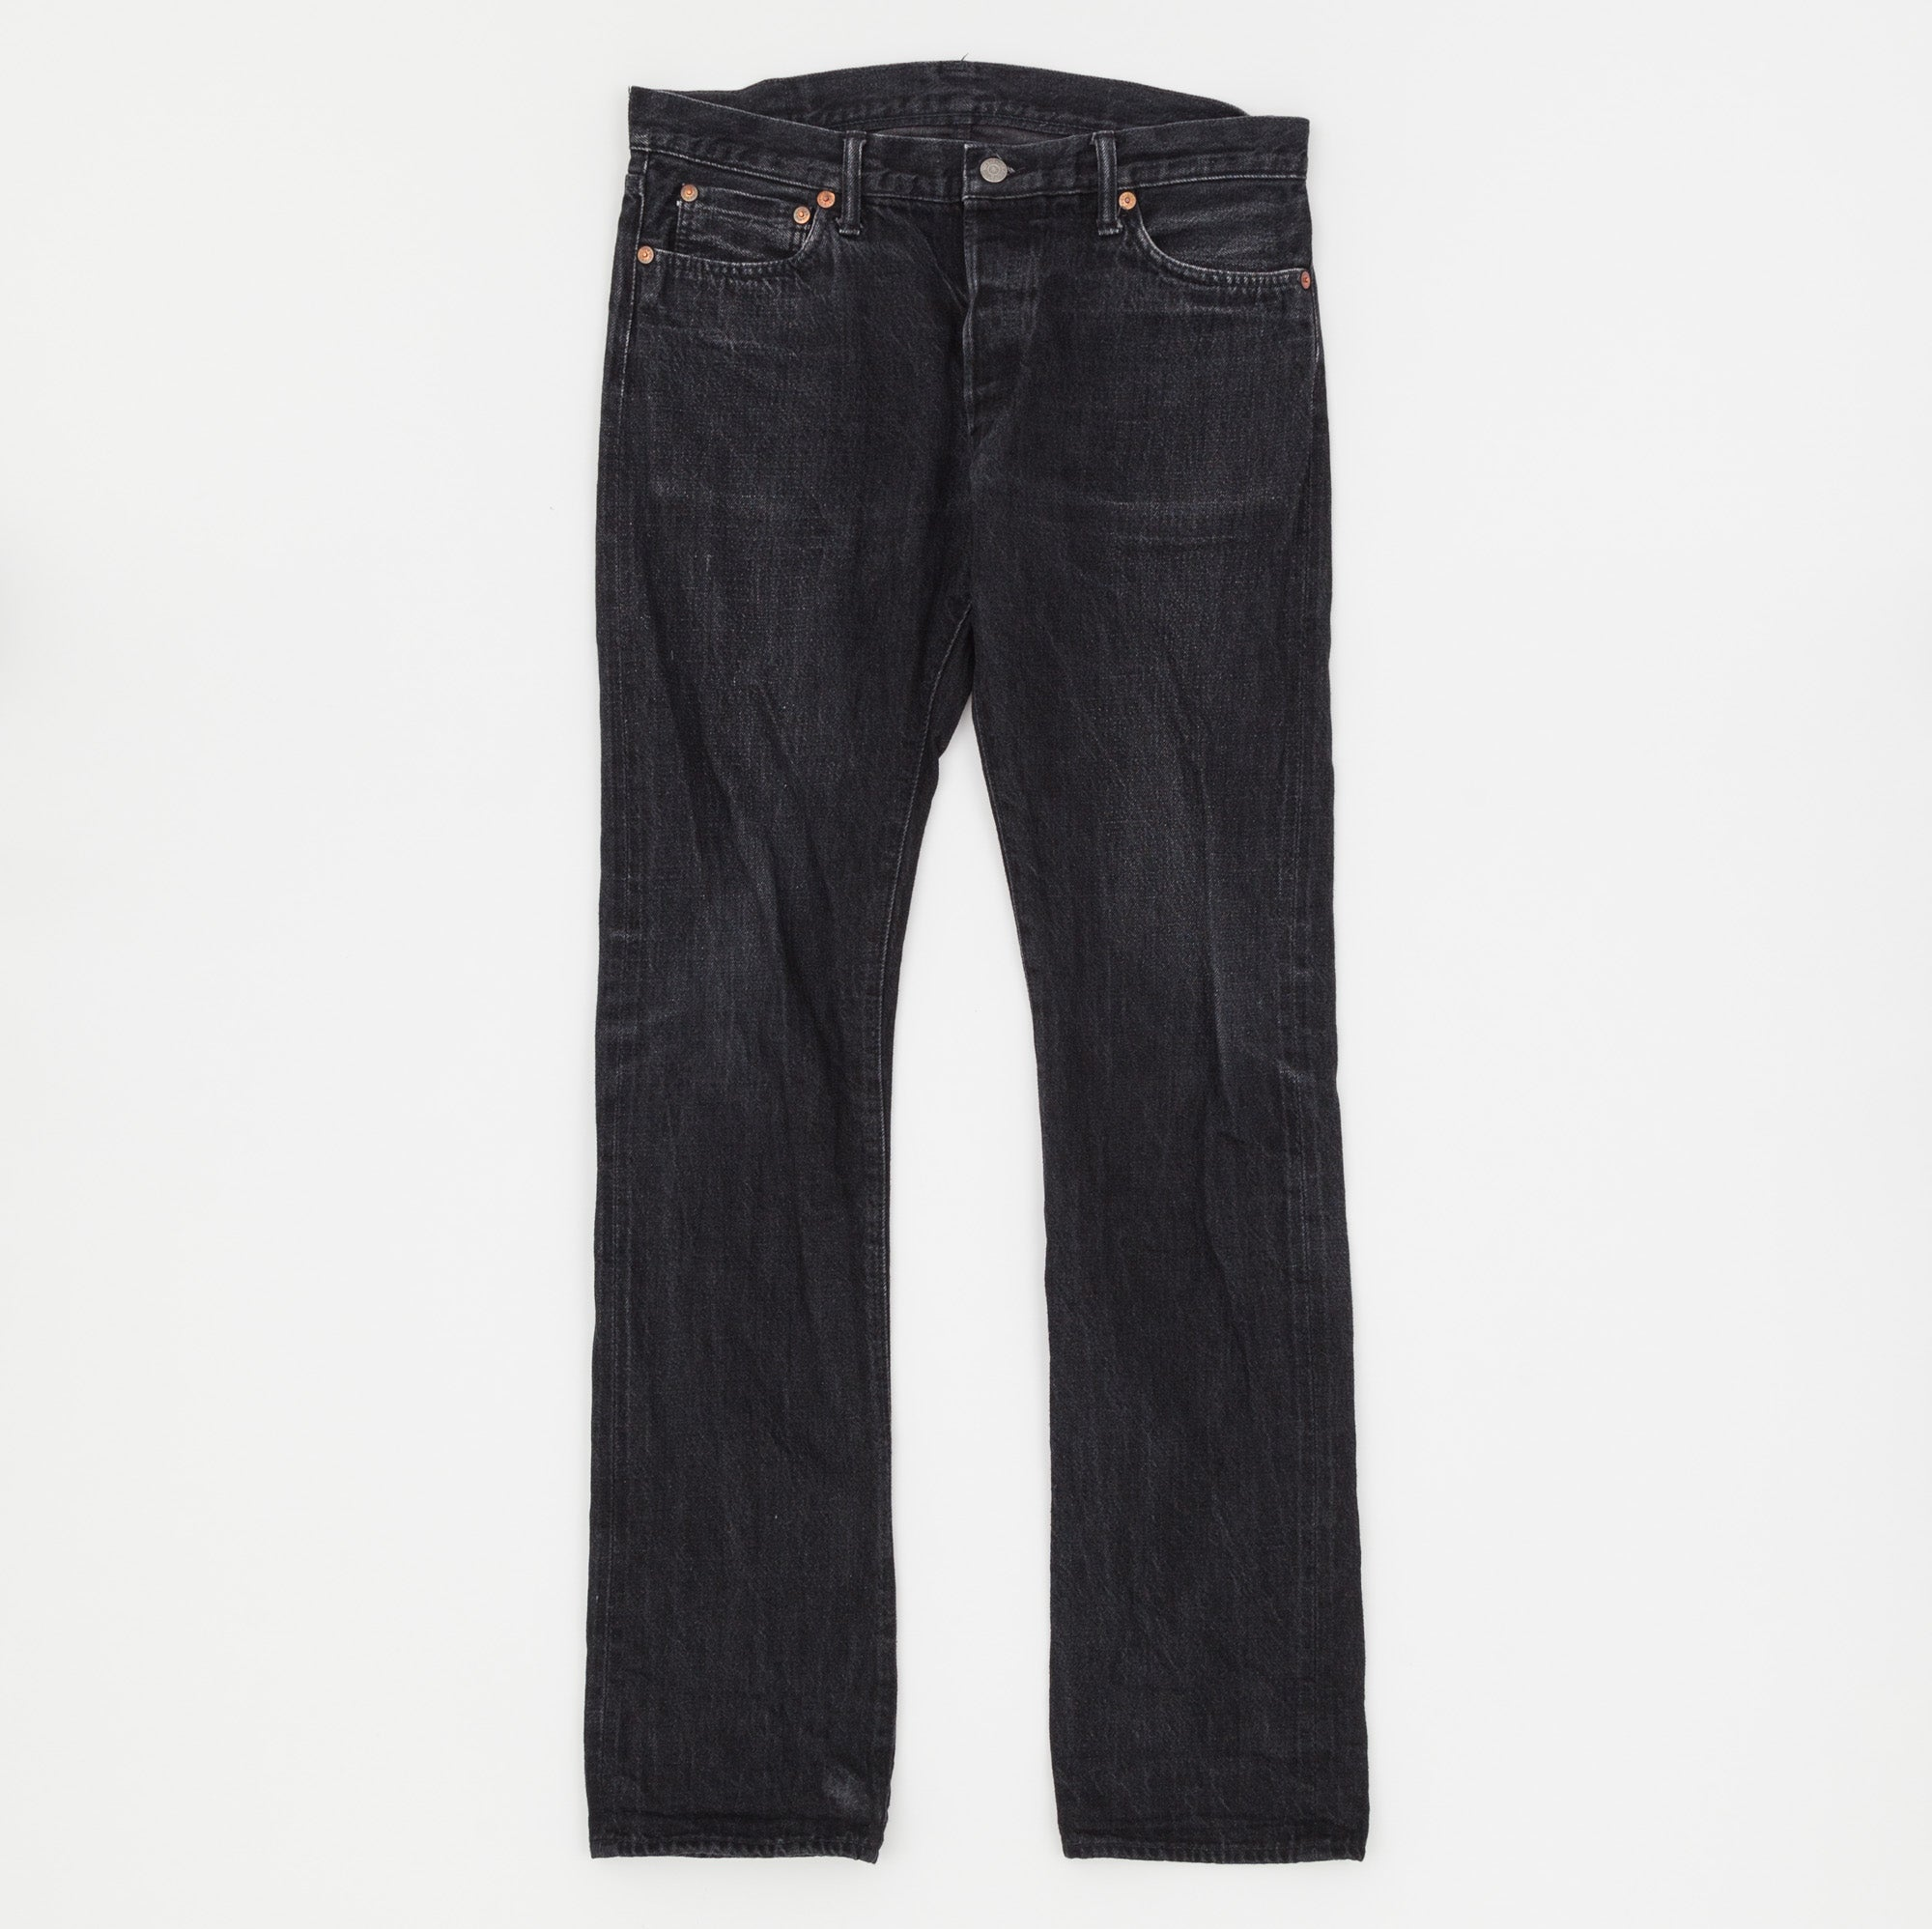 The Real McCoy's Joe McCoy 991BK Denim